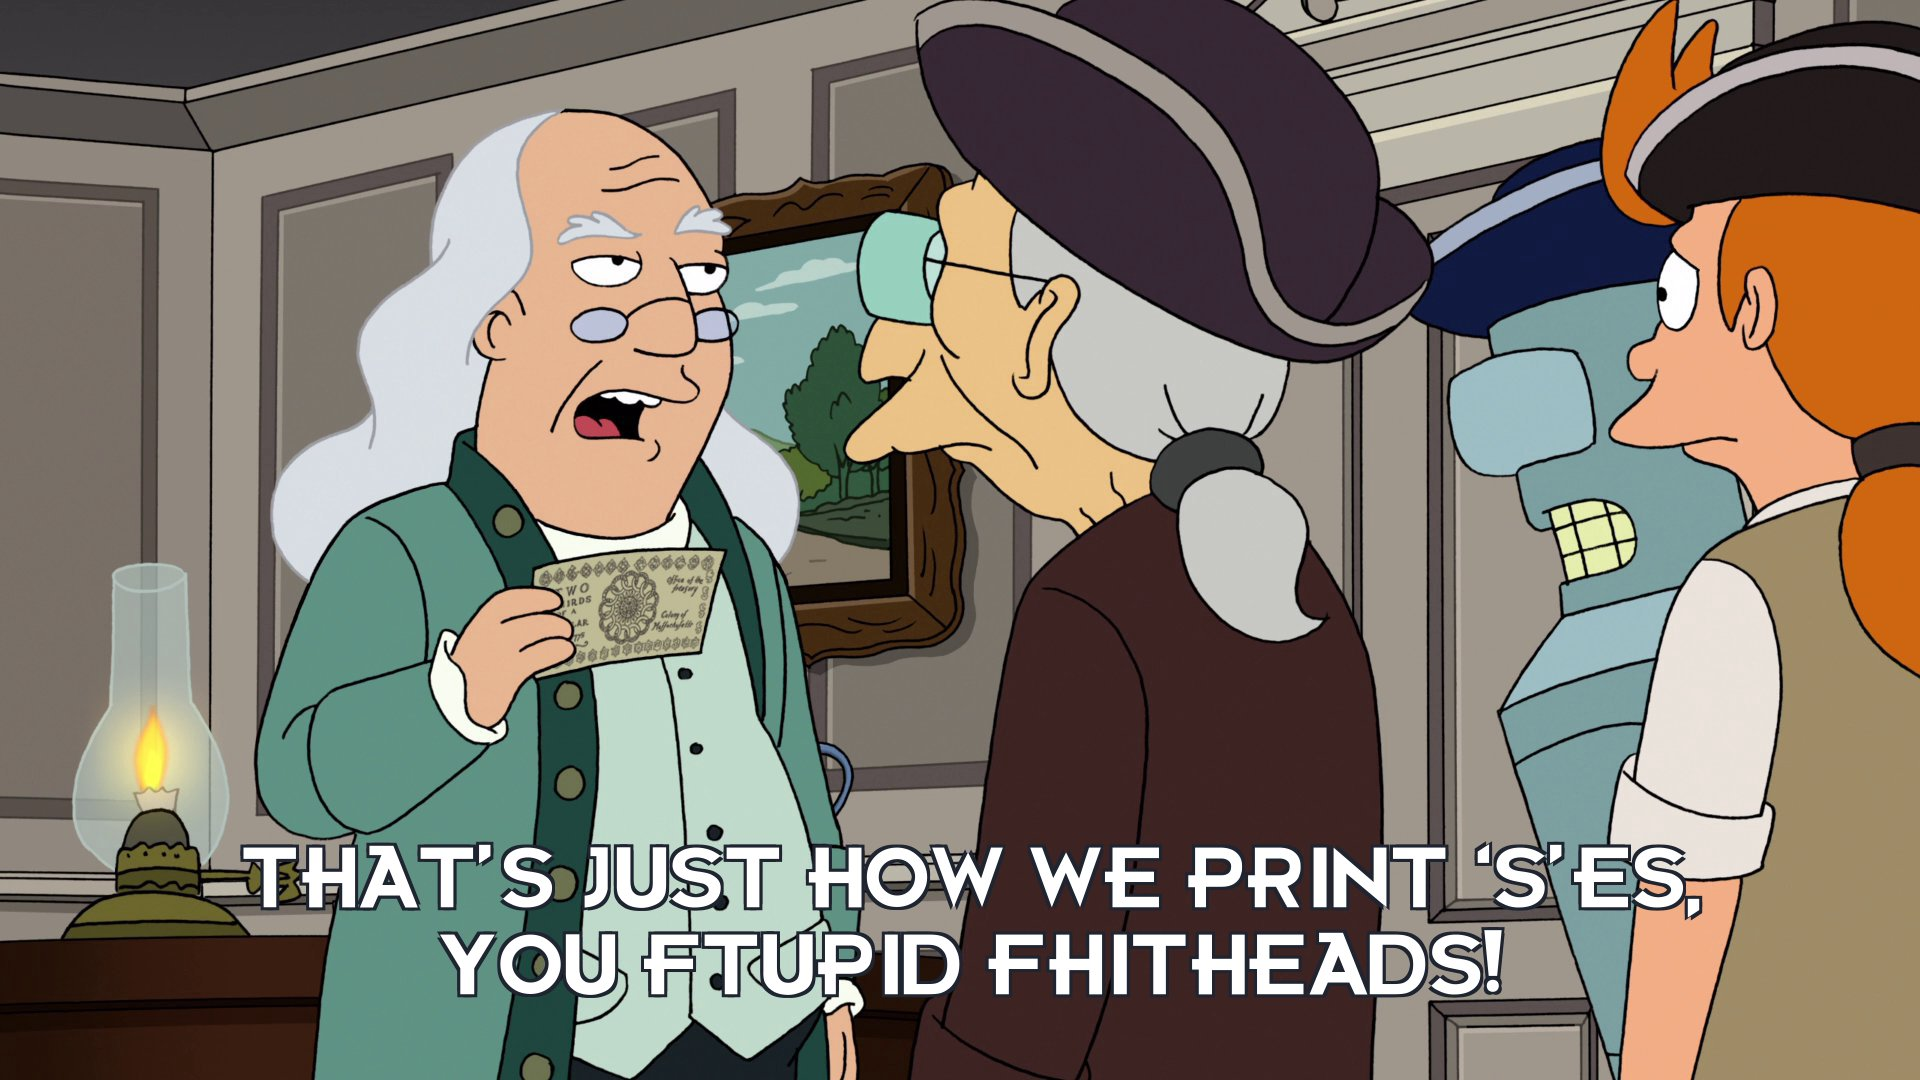 Ben Franklin: That's just how we print 'S'es, you ftupid fhitheads!